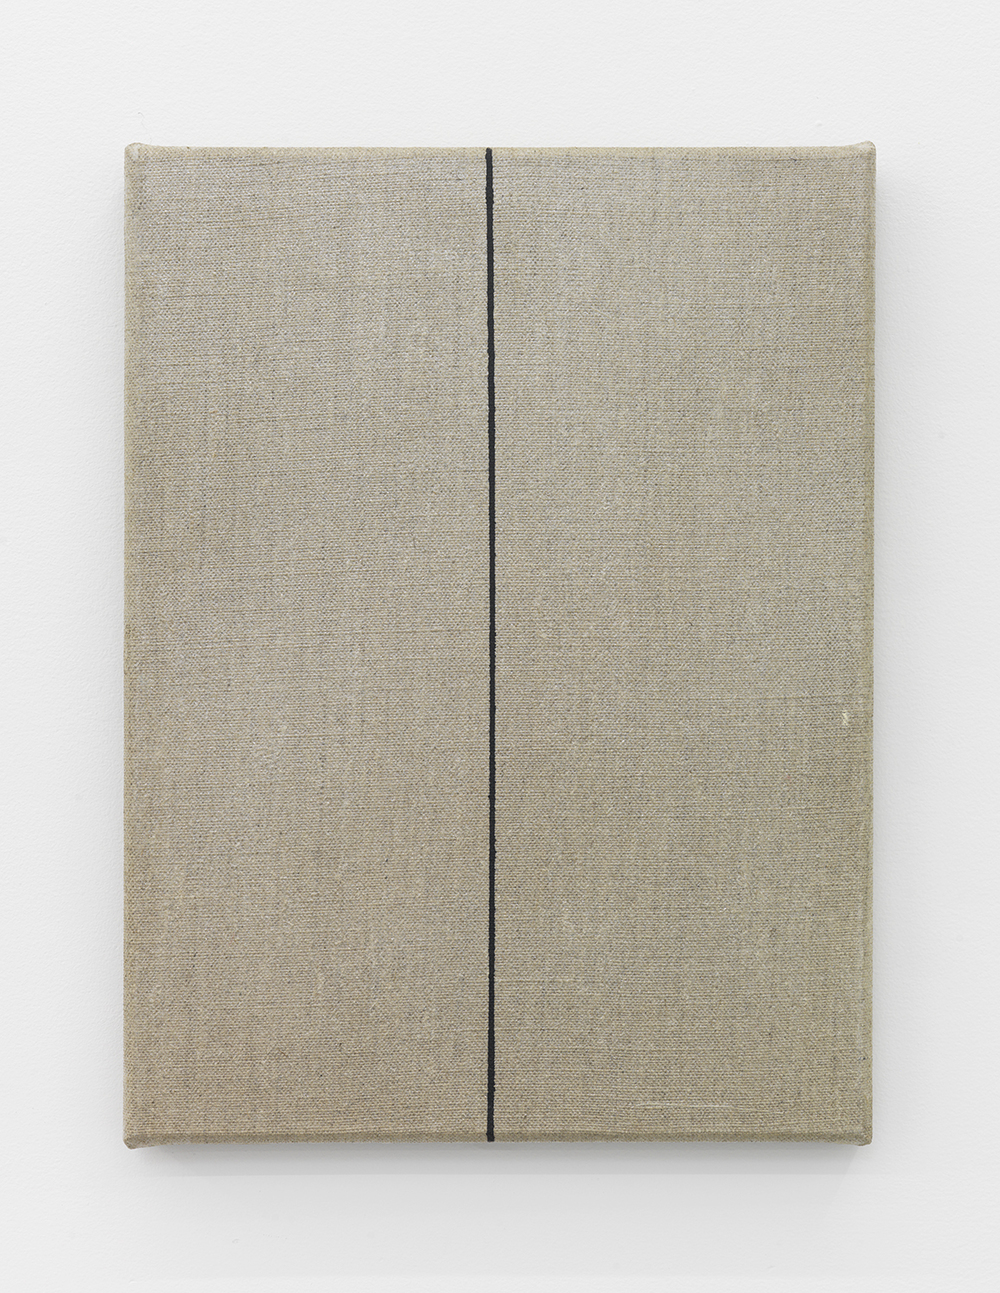 Dana Powell Linen Lift, 2016 Oil on linen 12 x 9 inches